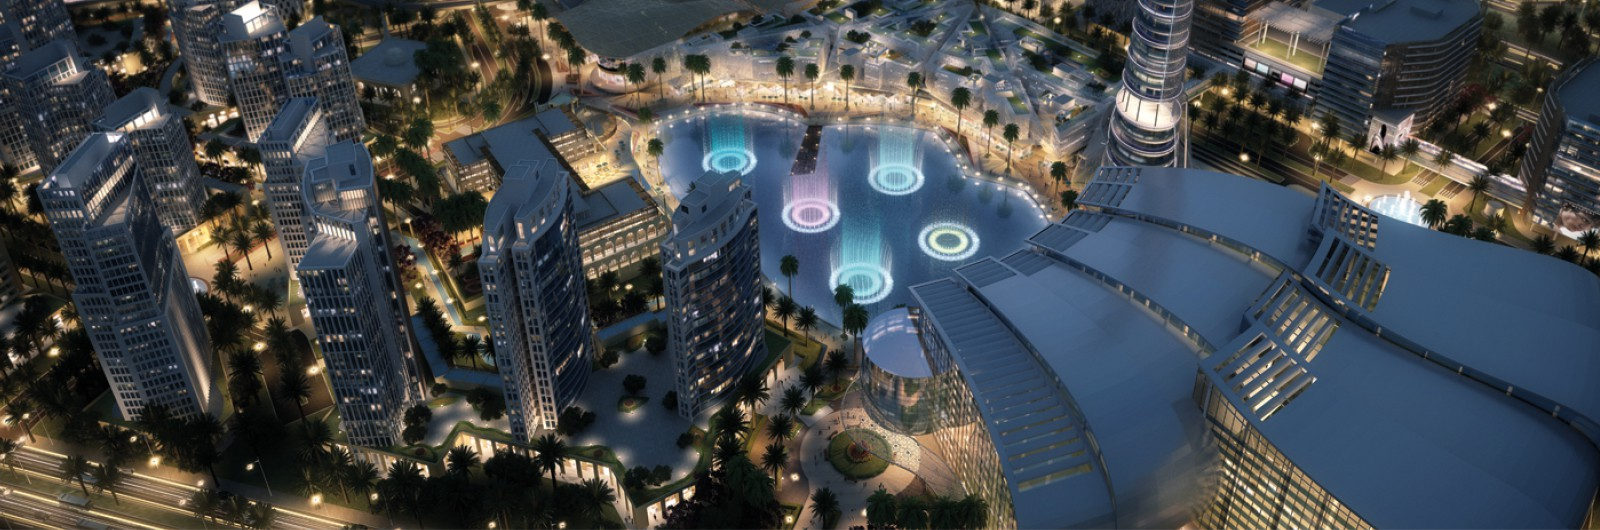 Heart of Jeddah Project